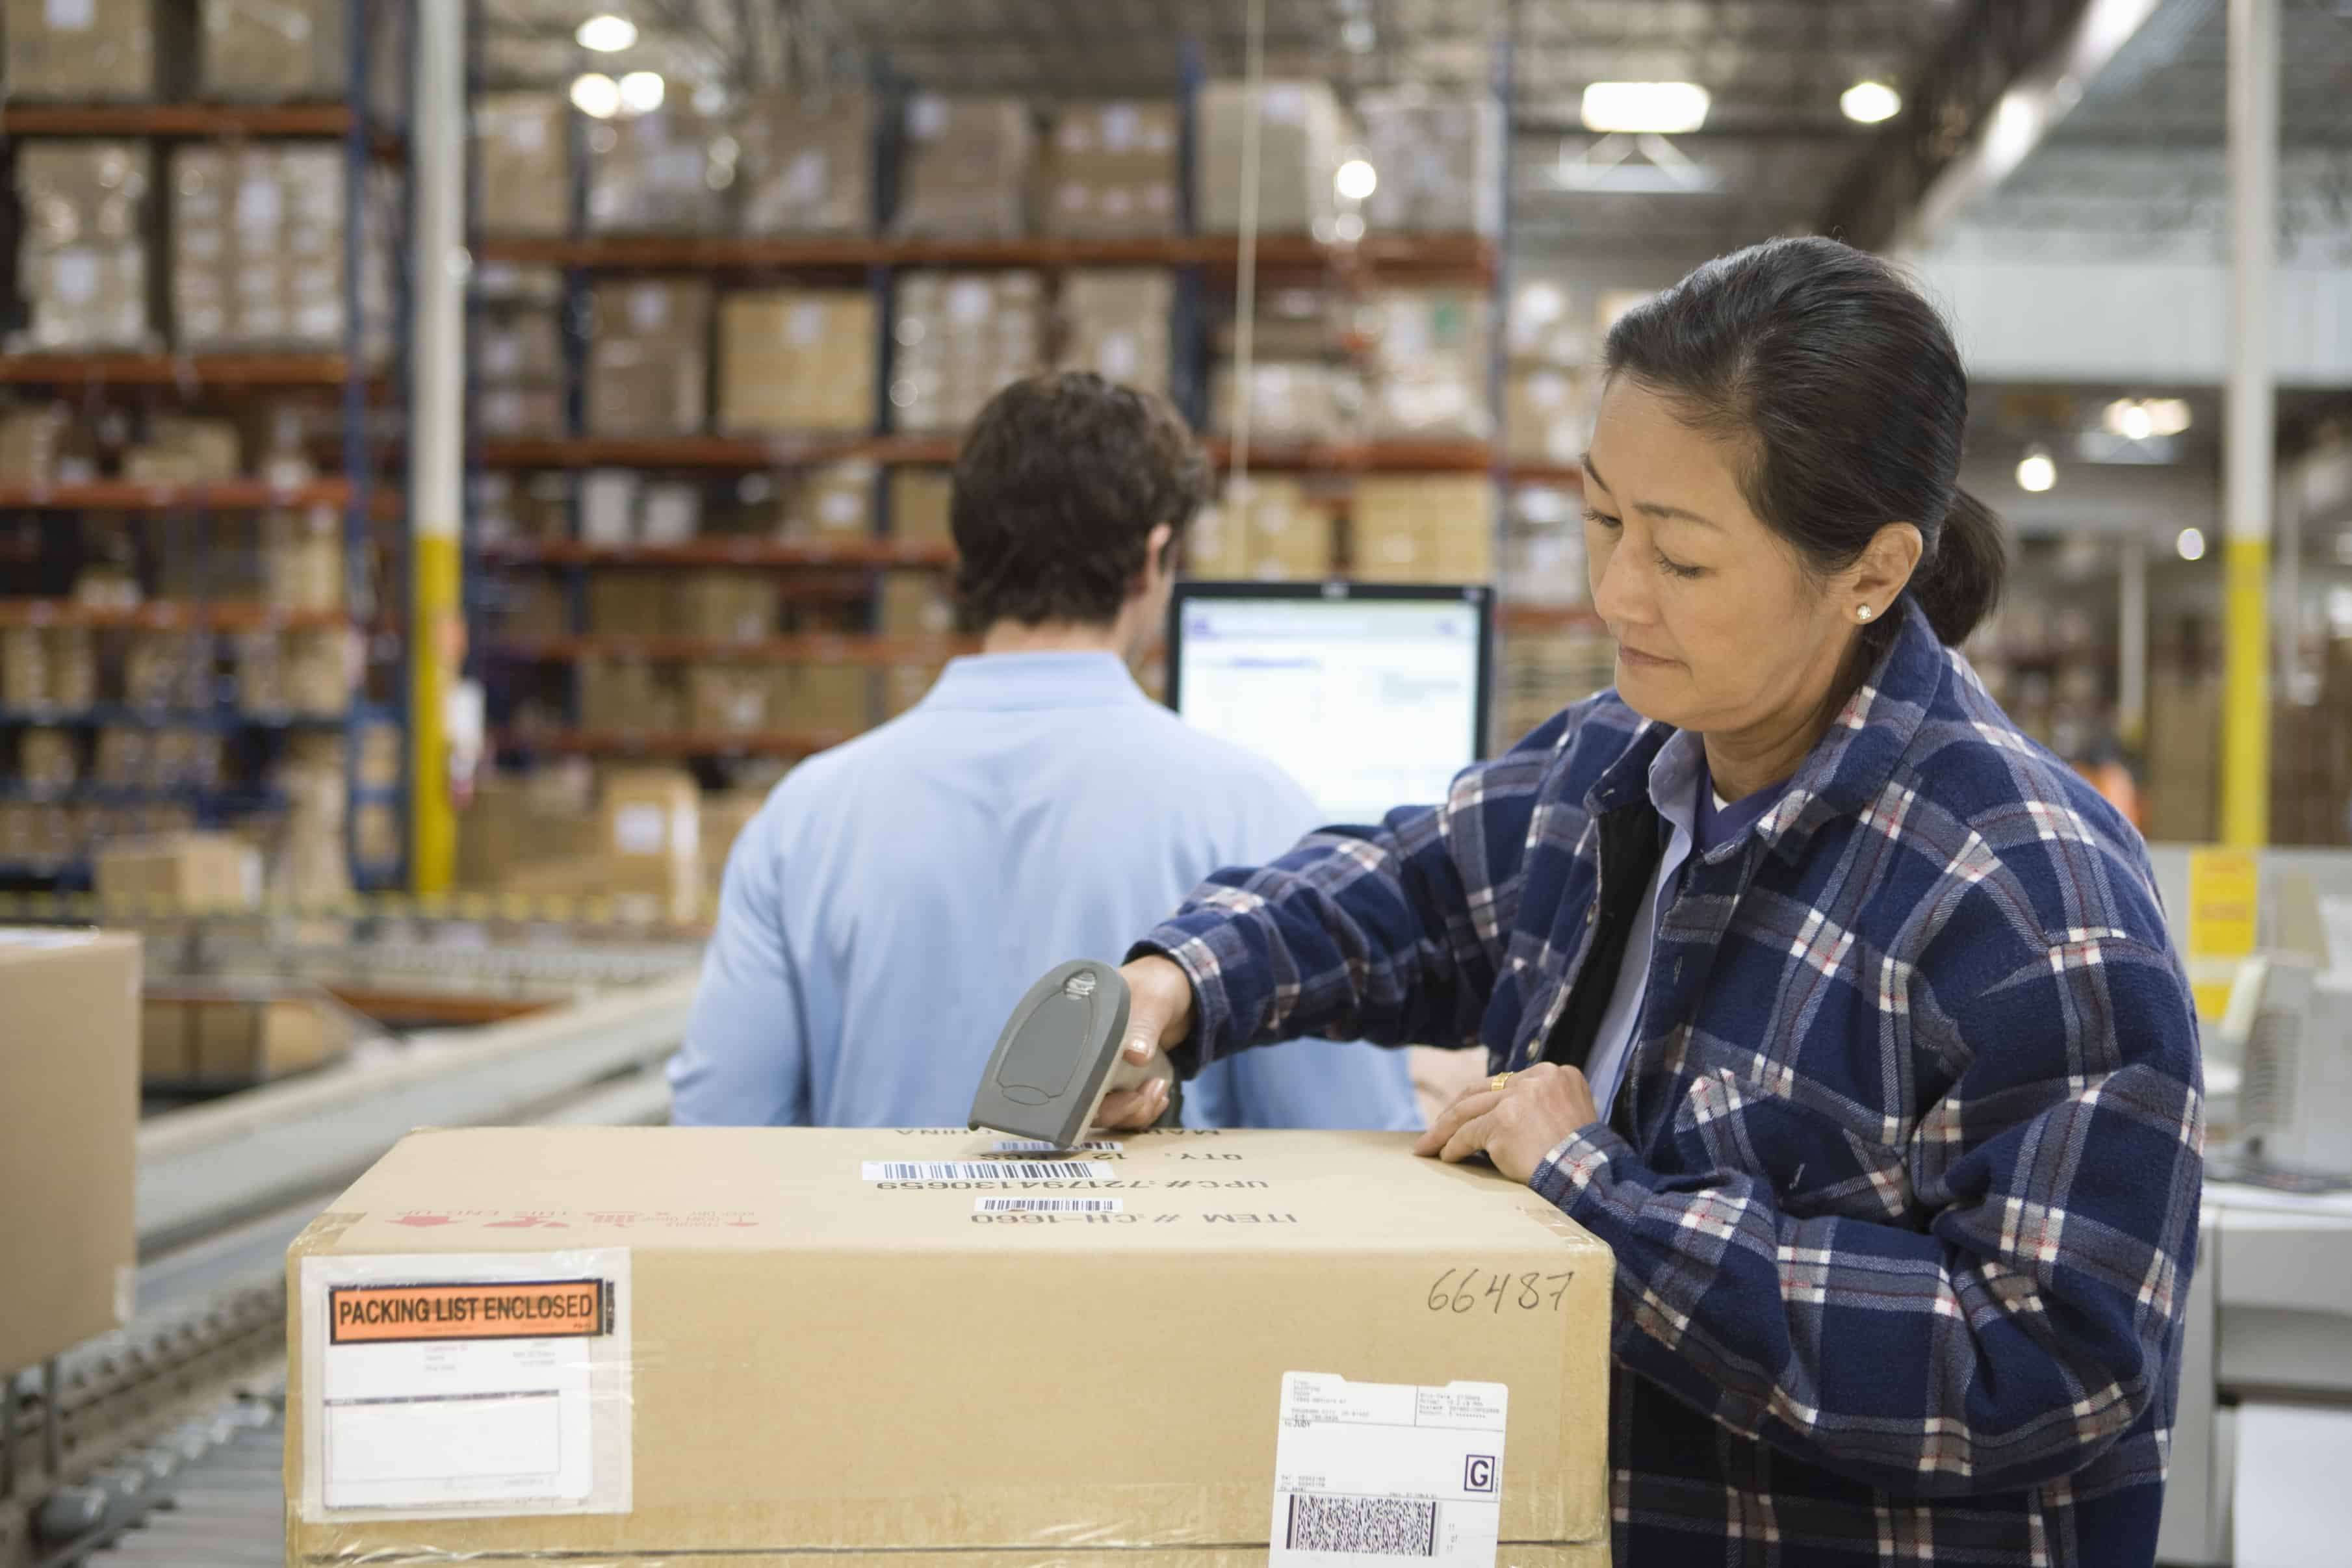 woman scanning box in large warehouse man looking at computer screen freepoint technologies